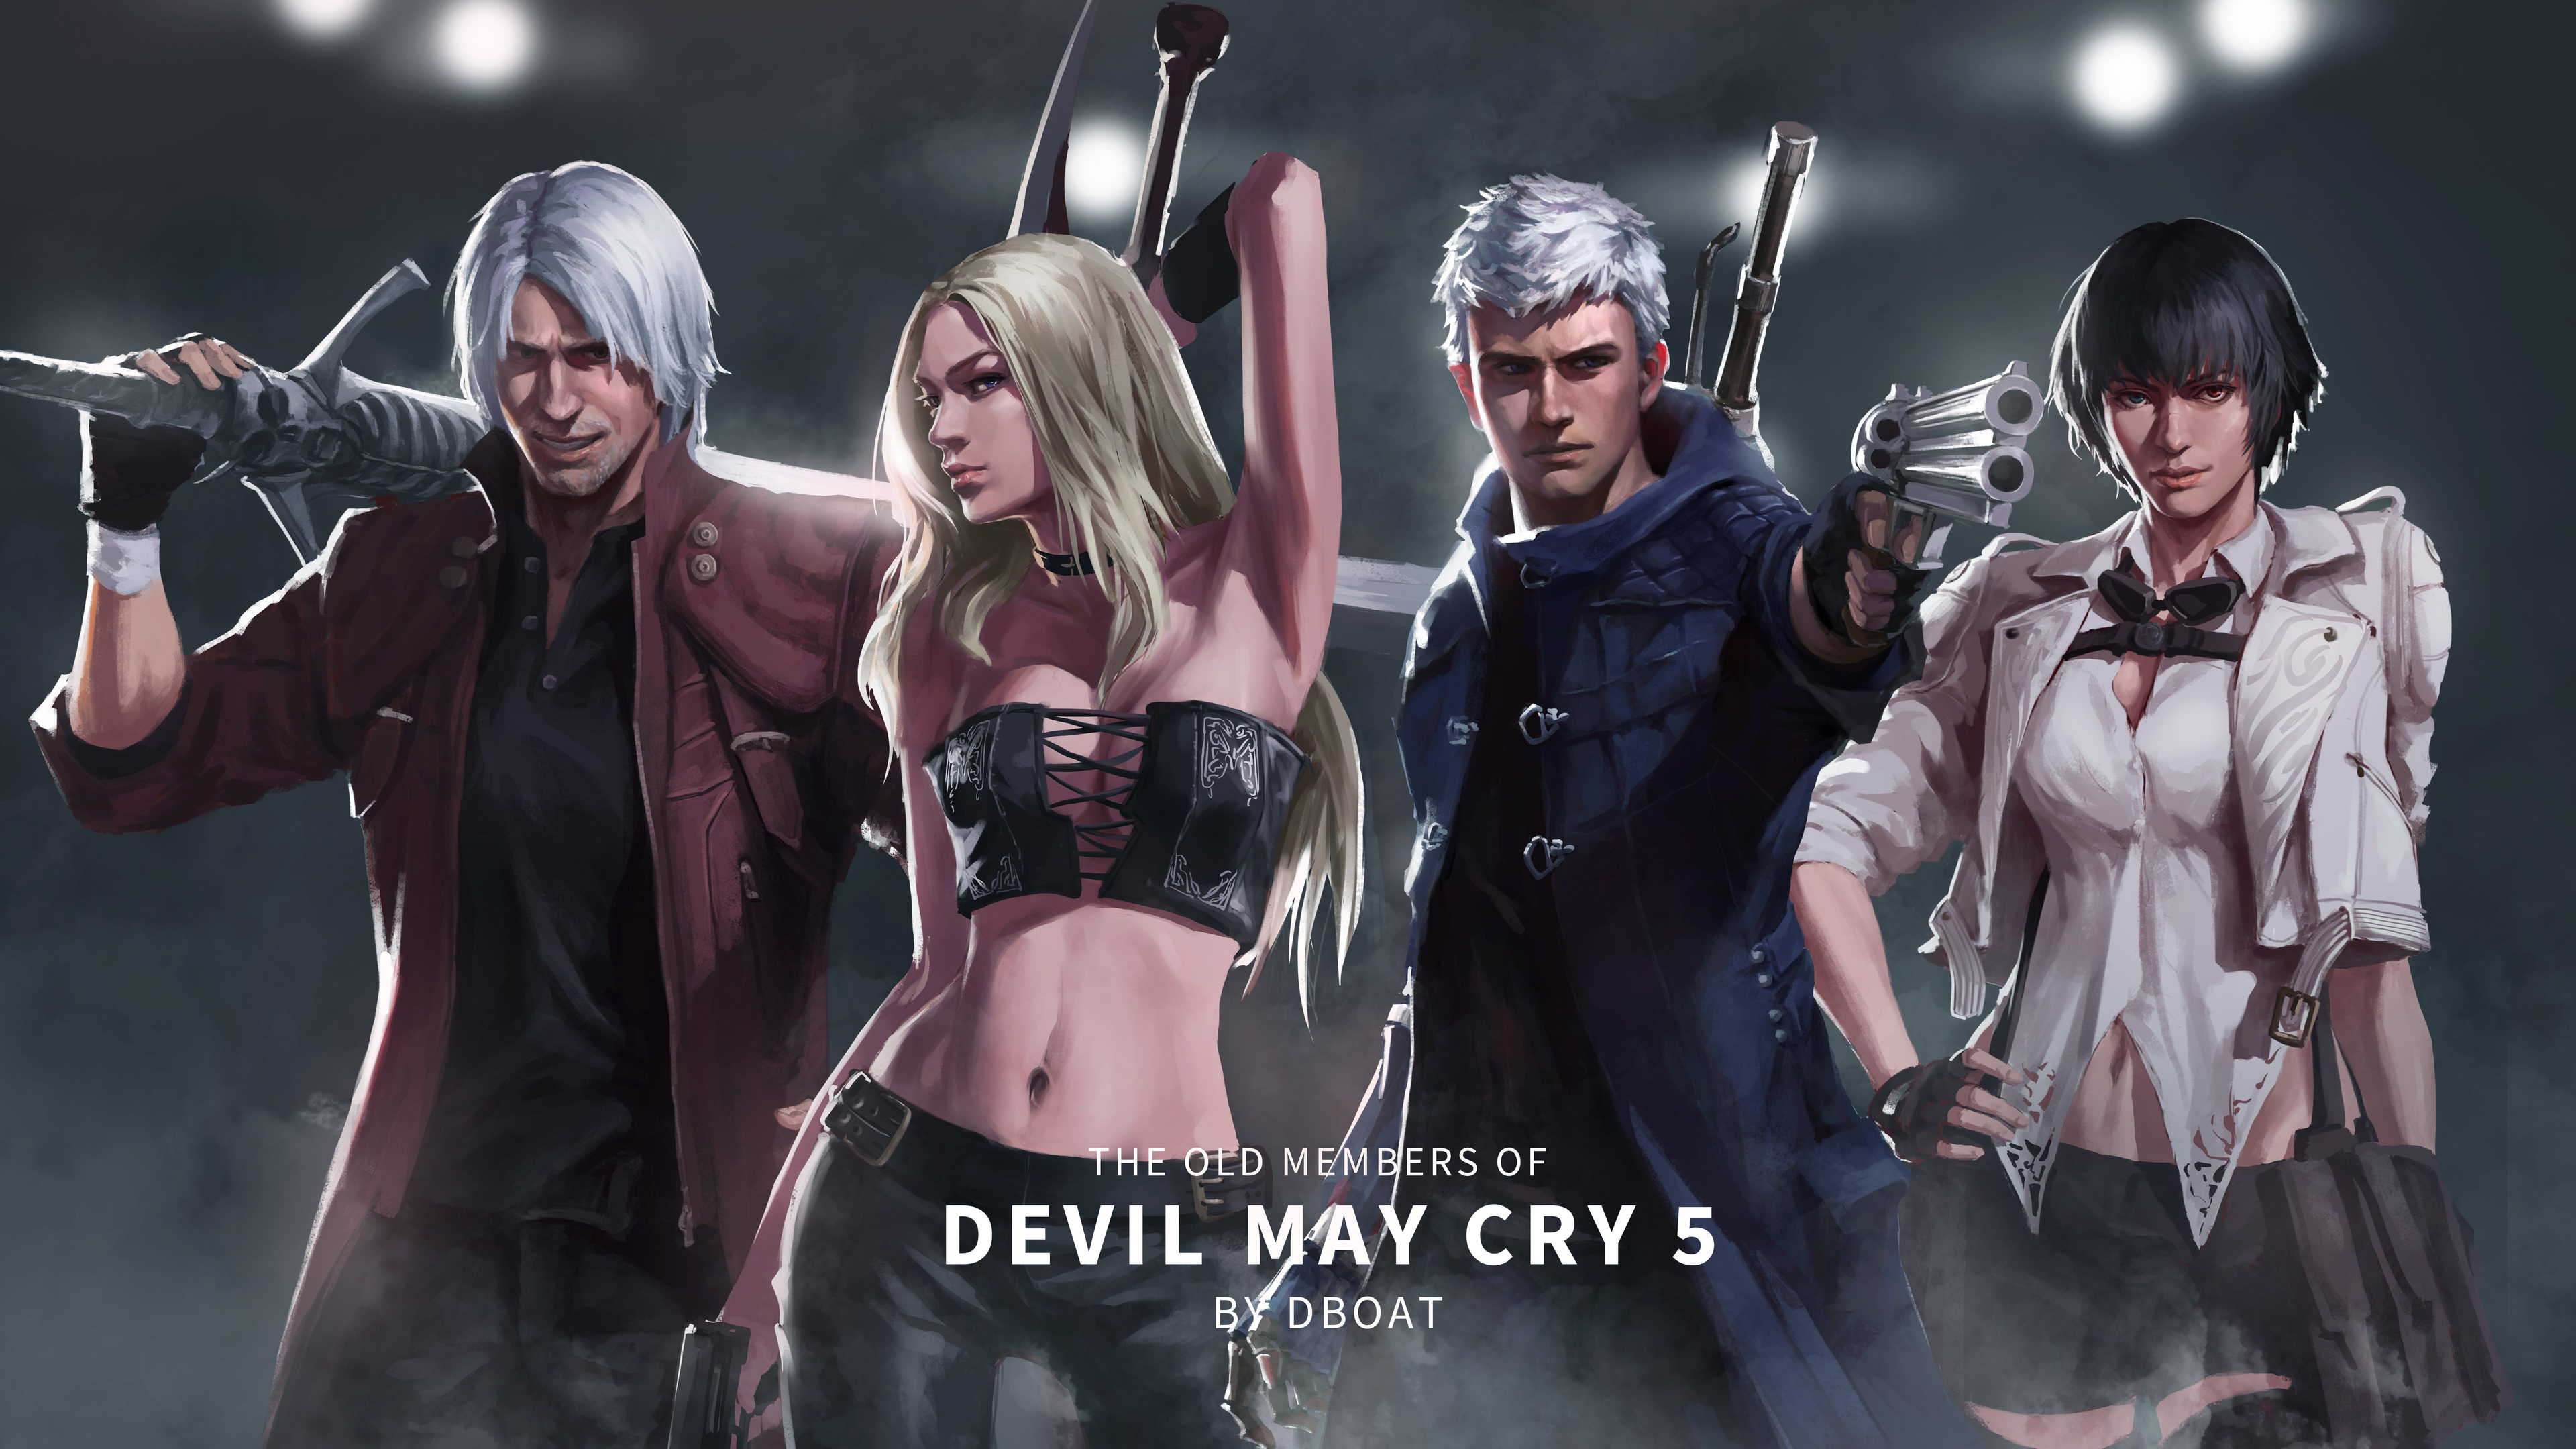 Wallpaper 4k Devil May Cry 5 Old Members 4k 2019 Games